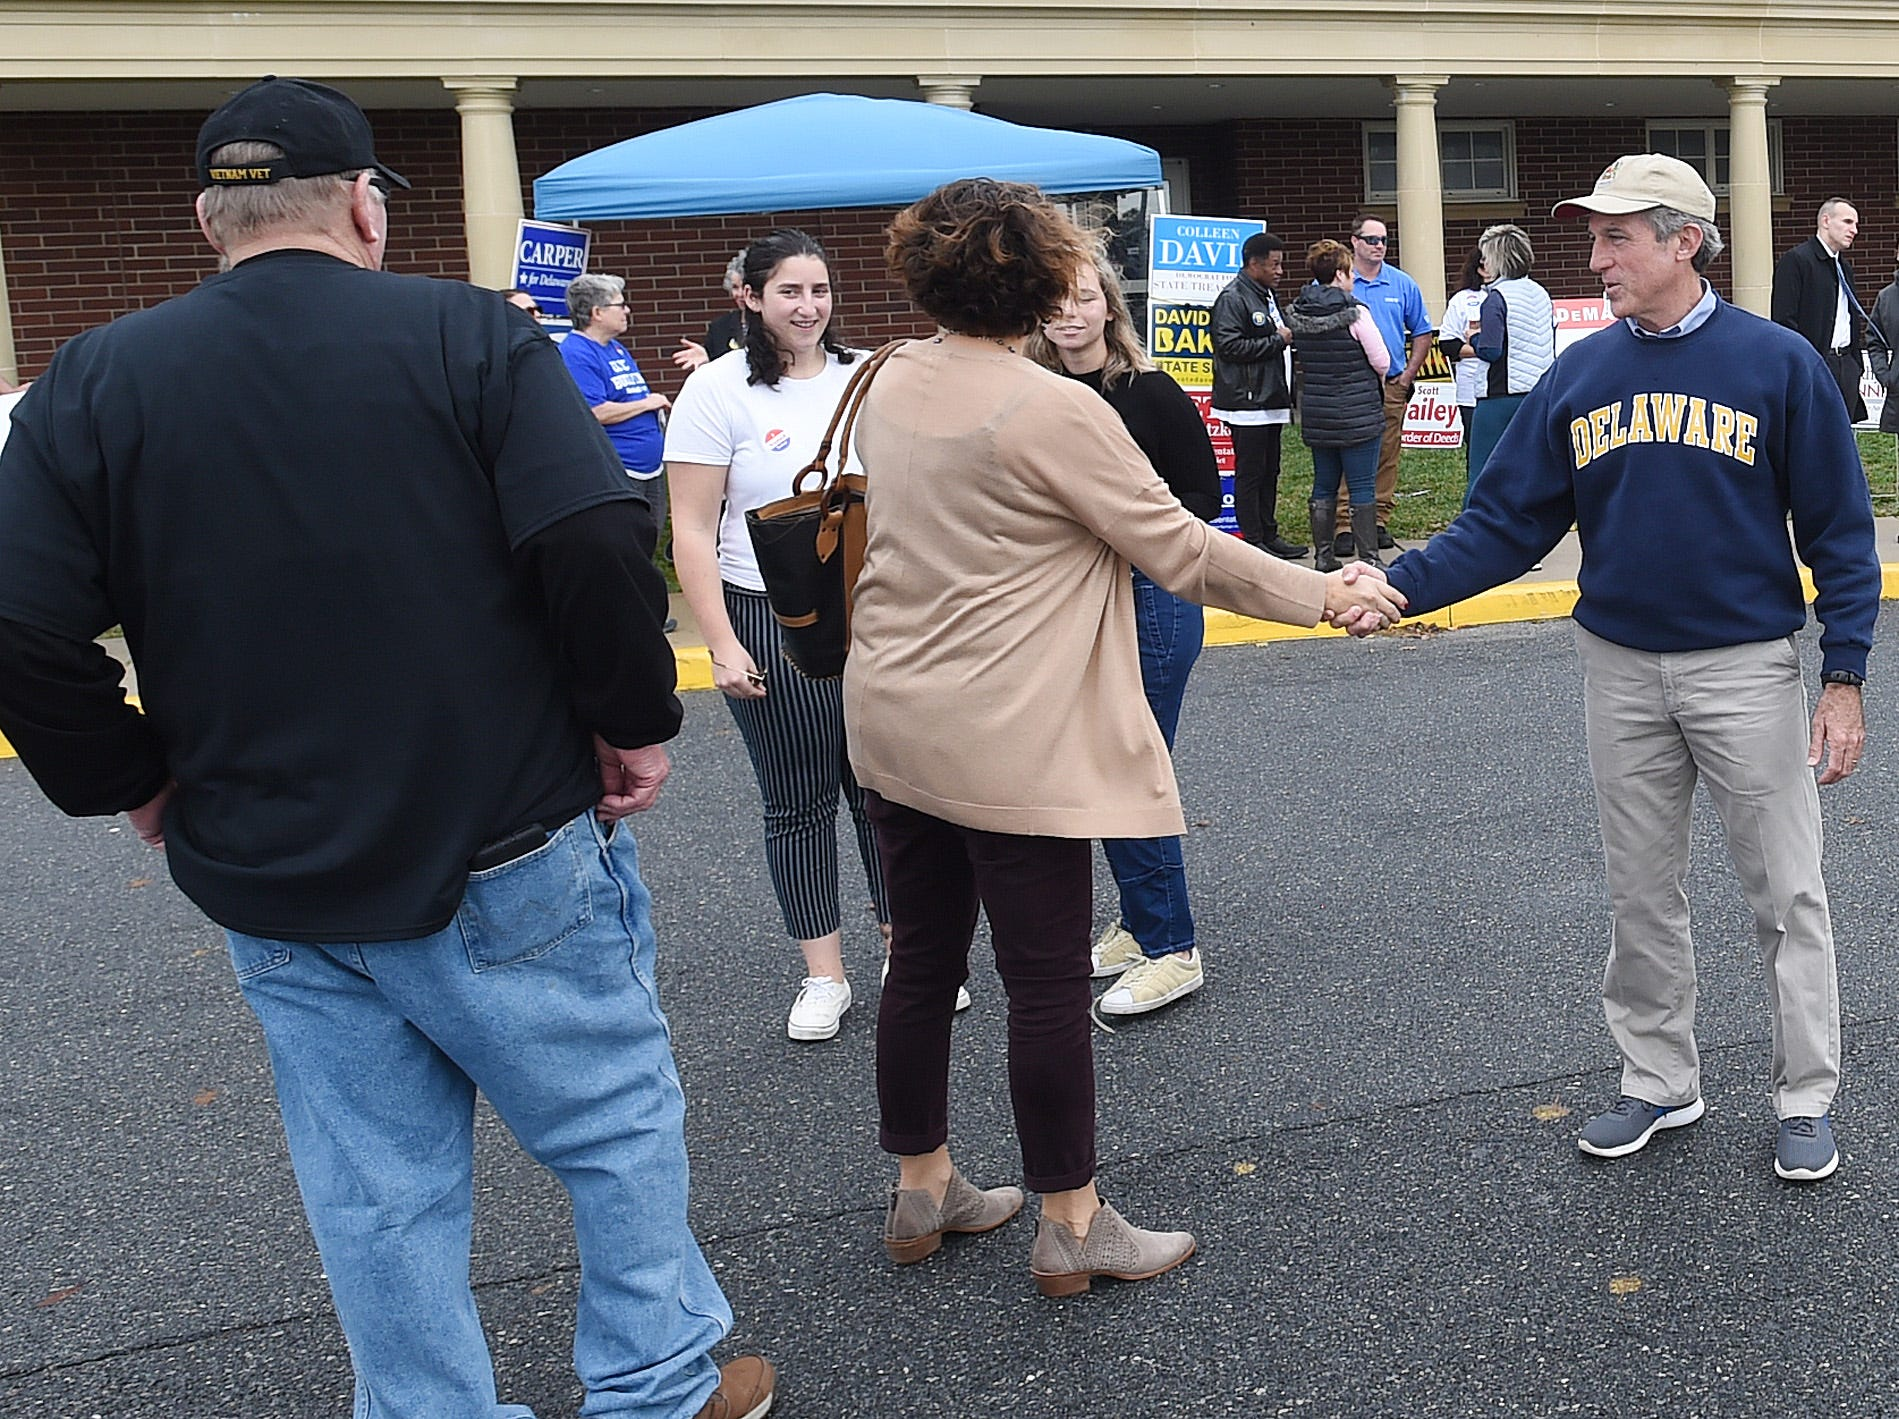 Delaware Governor John Carney greets voters at Cape Henlopen High School near Lewes as turnout in eastern Sussex County has been steady at polling places as candidates still seek supporters for their support.